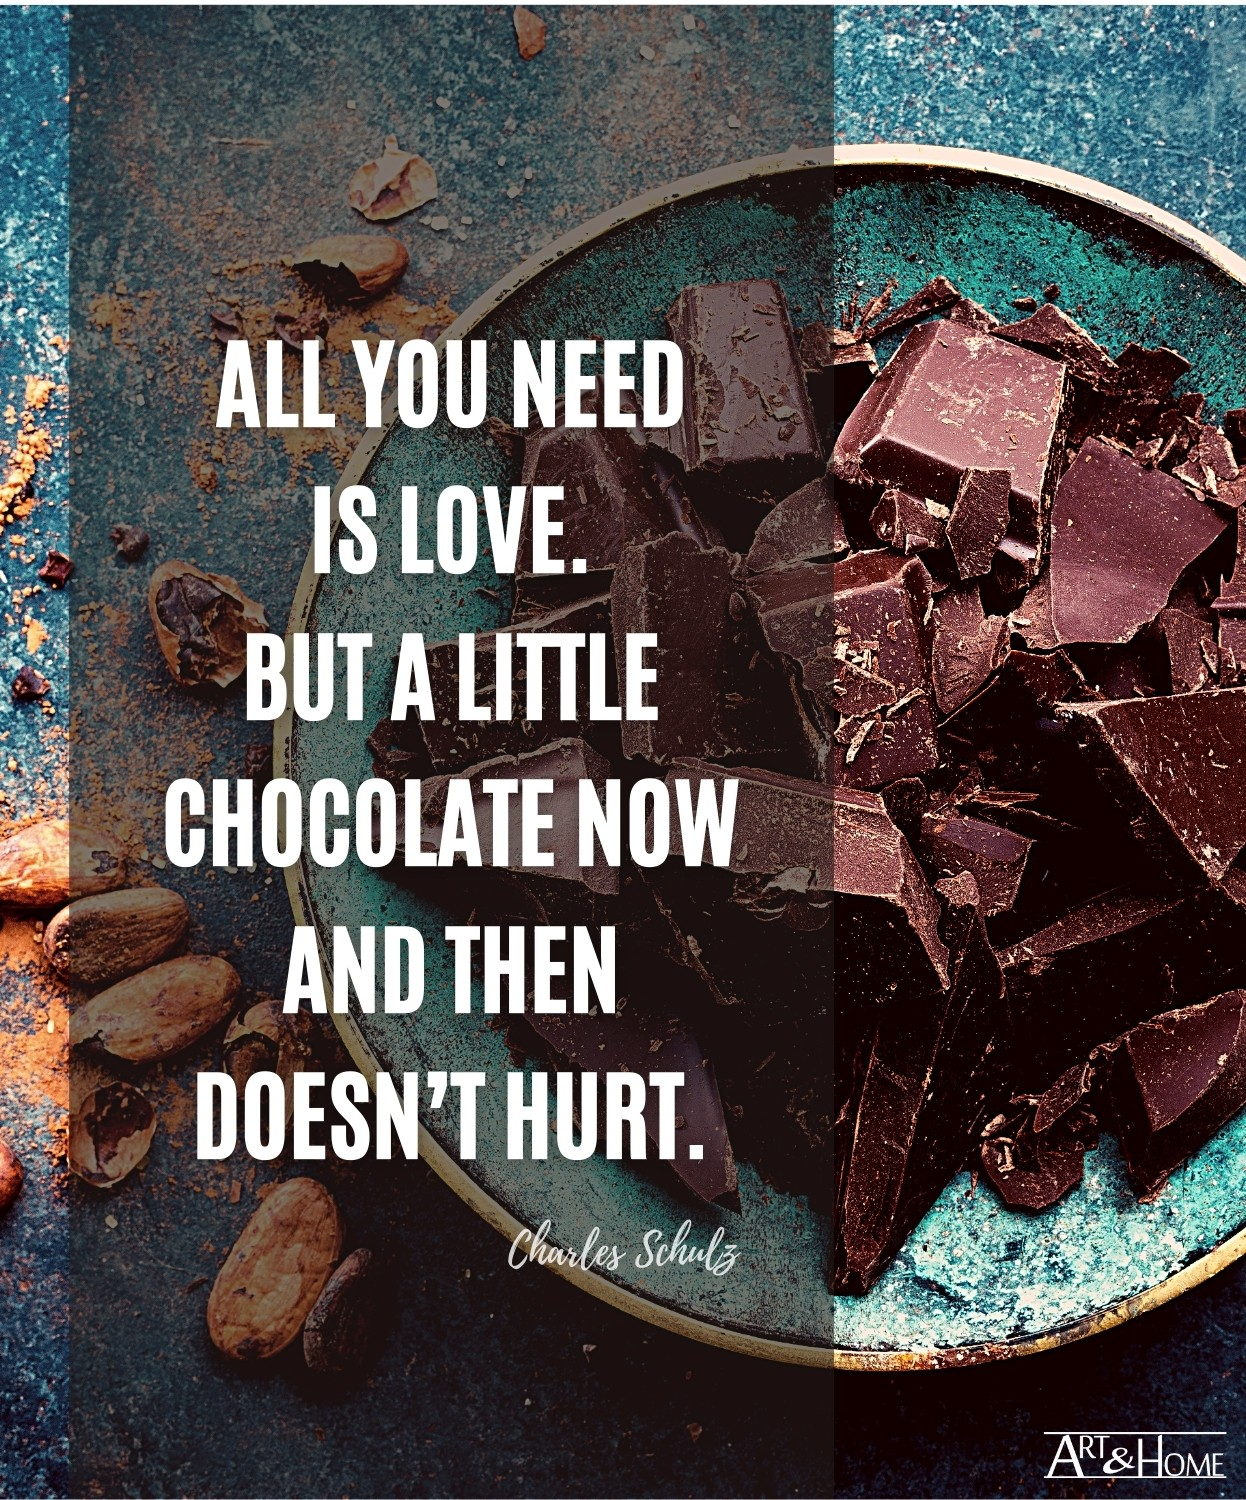 Charles Schulz Love and Chocolate Quote